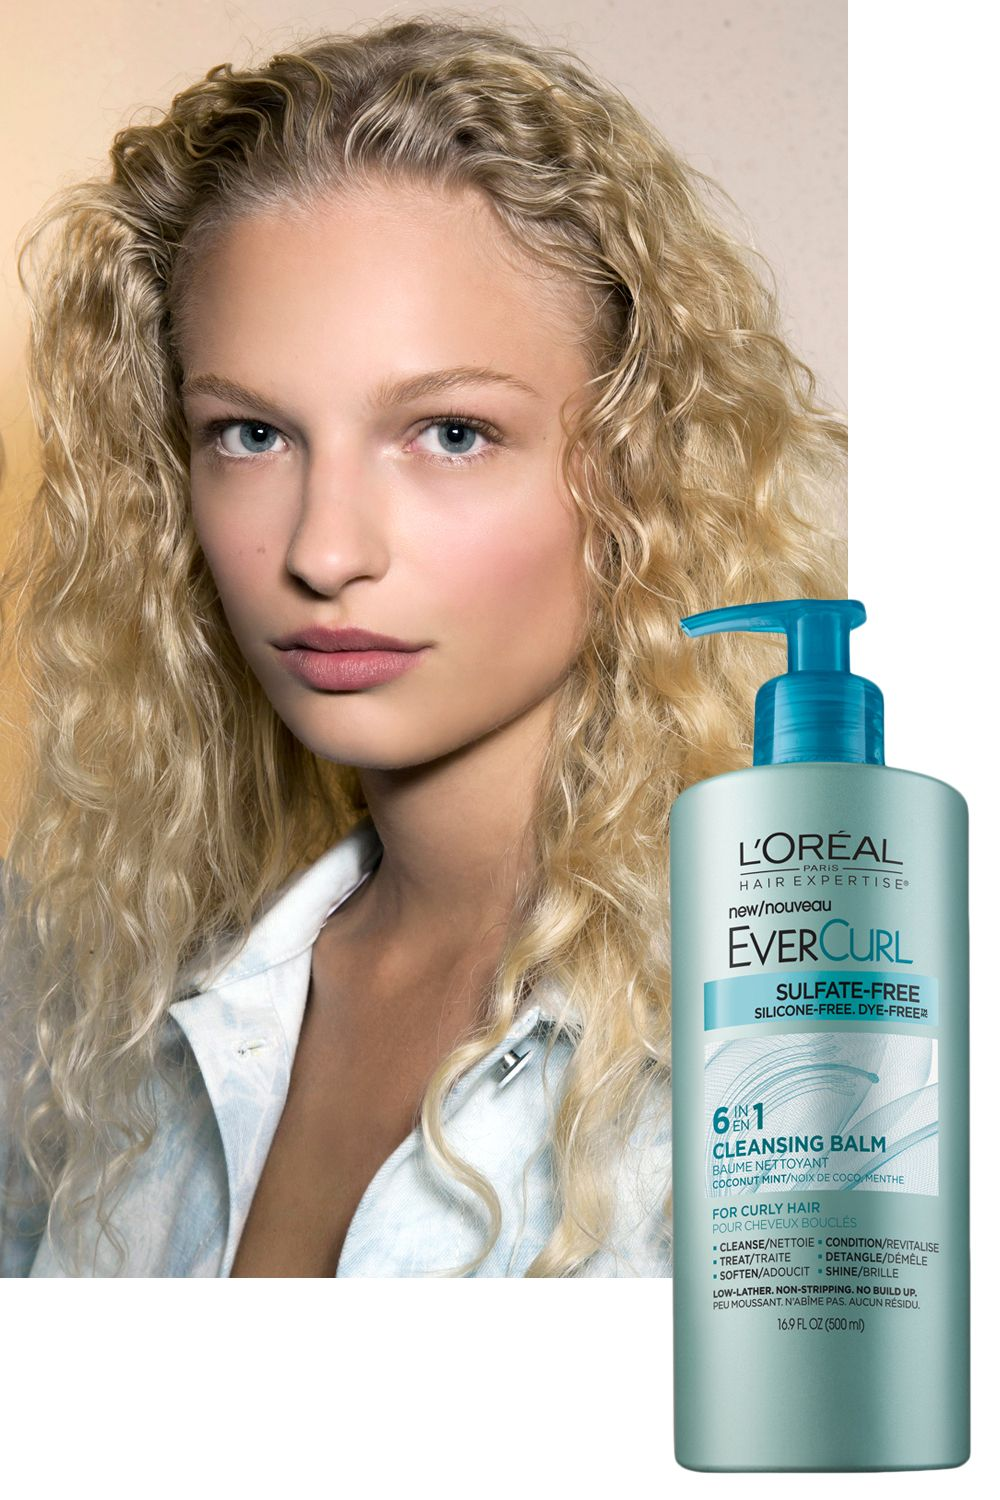 """<p>Curly hair tends to be dry—it's tricky for your scalp's natural oils to make their way down the length of a corkscrew or wave pattern. Too-vigorous or too-frequent washing only adds to the problem. Cut back on sudsing and amp up hydration with a creamy cleansing conditioner, such as <a href=""""http://www.lorealparisusa.com/en/products/hair-care/products/cleansing-conditioner/hair-expertise-evercurl-cleansing-balm.aspx"""" target=""""_blank"""">L'Oréal Paris EverCurl Cleansing Balm</a>.  """"It adds moisture and beautiful definition to curls,"""" Roszak says. Bonus: It also works as a styler. Just work one pump of the balm through damp hair to tame flyaways.</p>"""